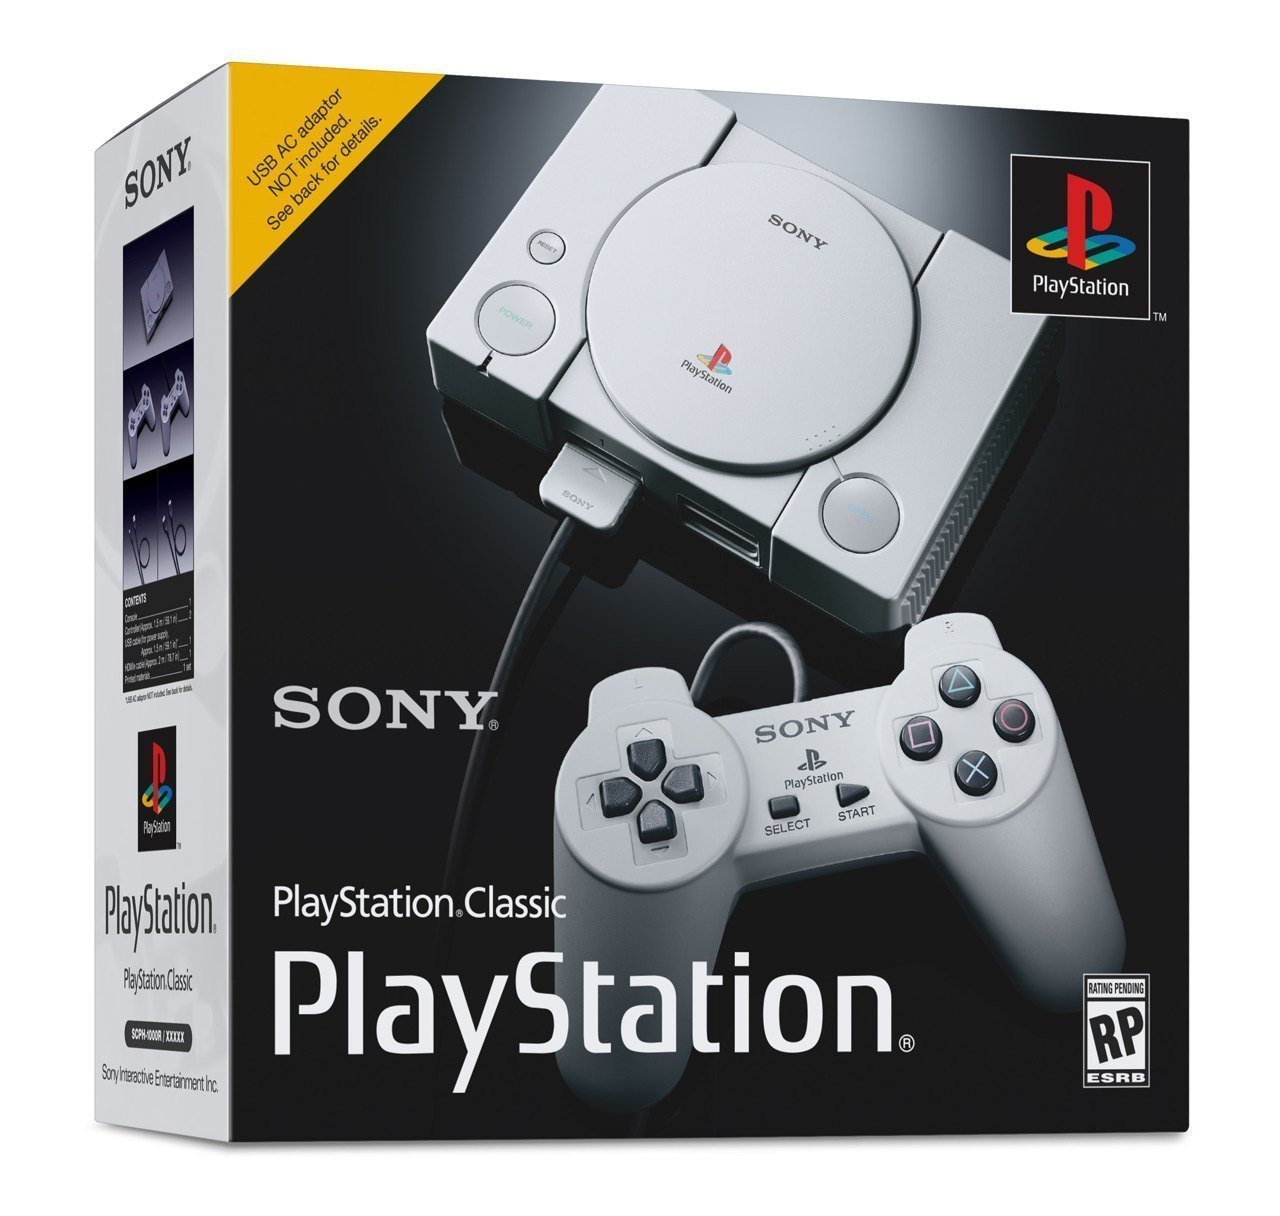 Sony unveils the PlayStation Classic mini console - Hardware